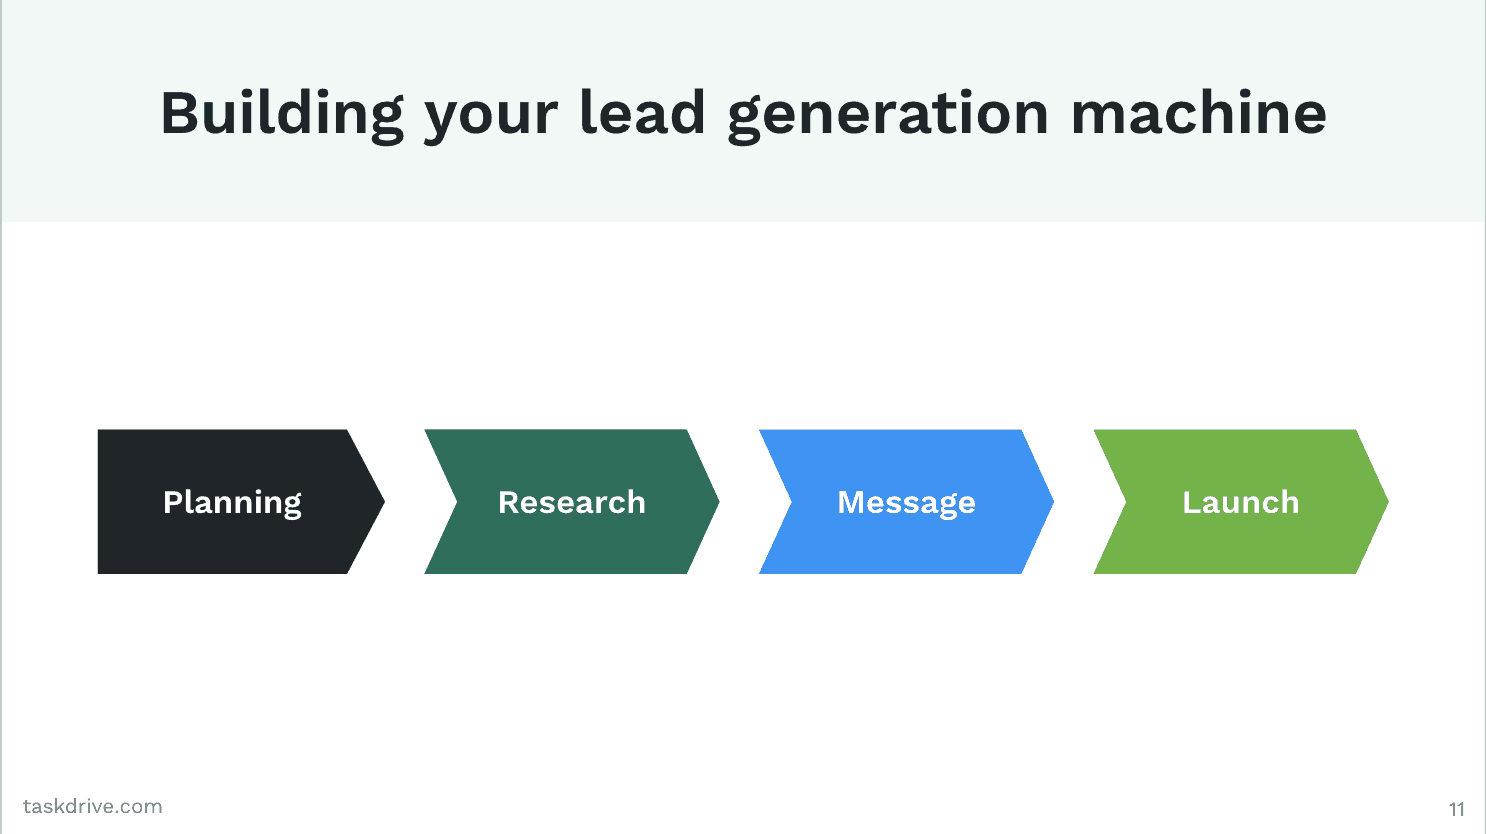 Building a Lean Mean, Lead Generation Machine With Outbound Prospecting 1